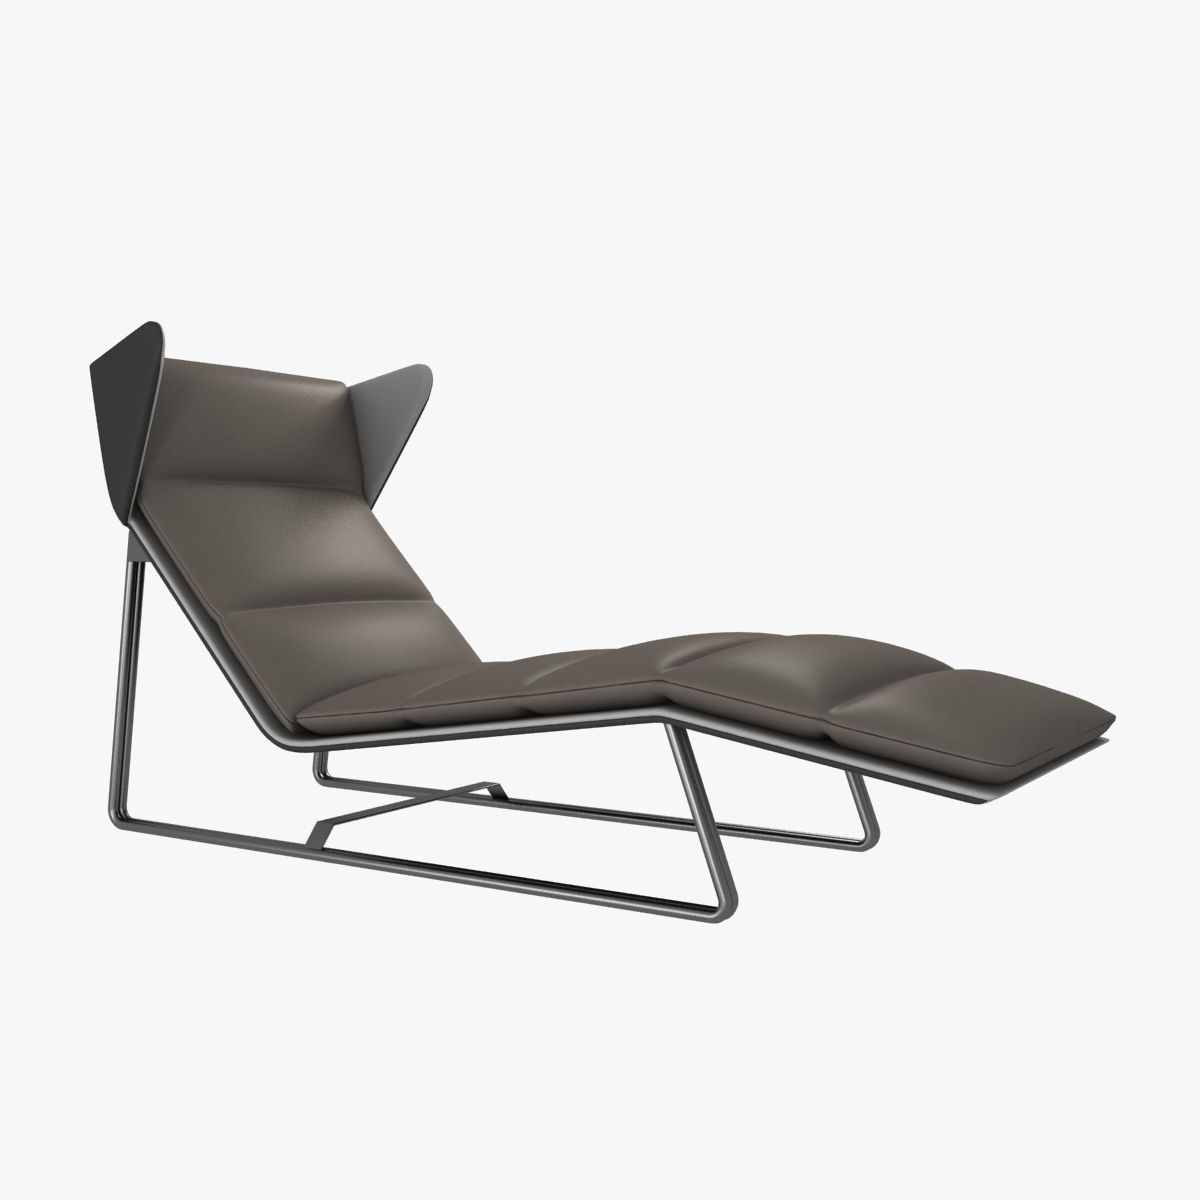 Cgtrader Within Trendy Modern Chaise Lounges (View 5 of 15)